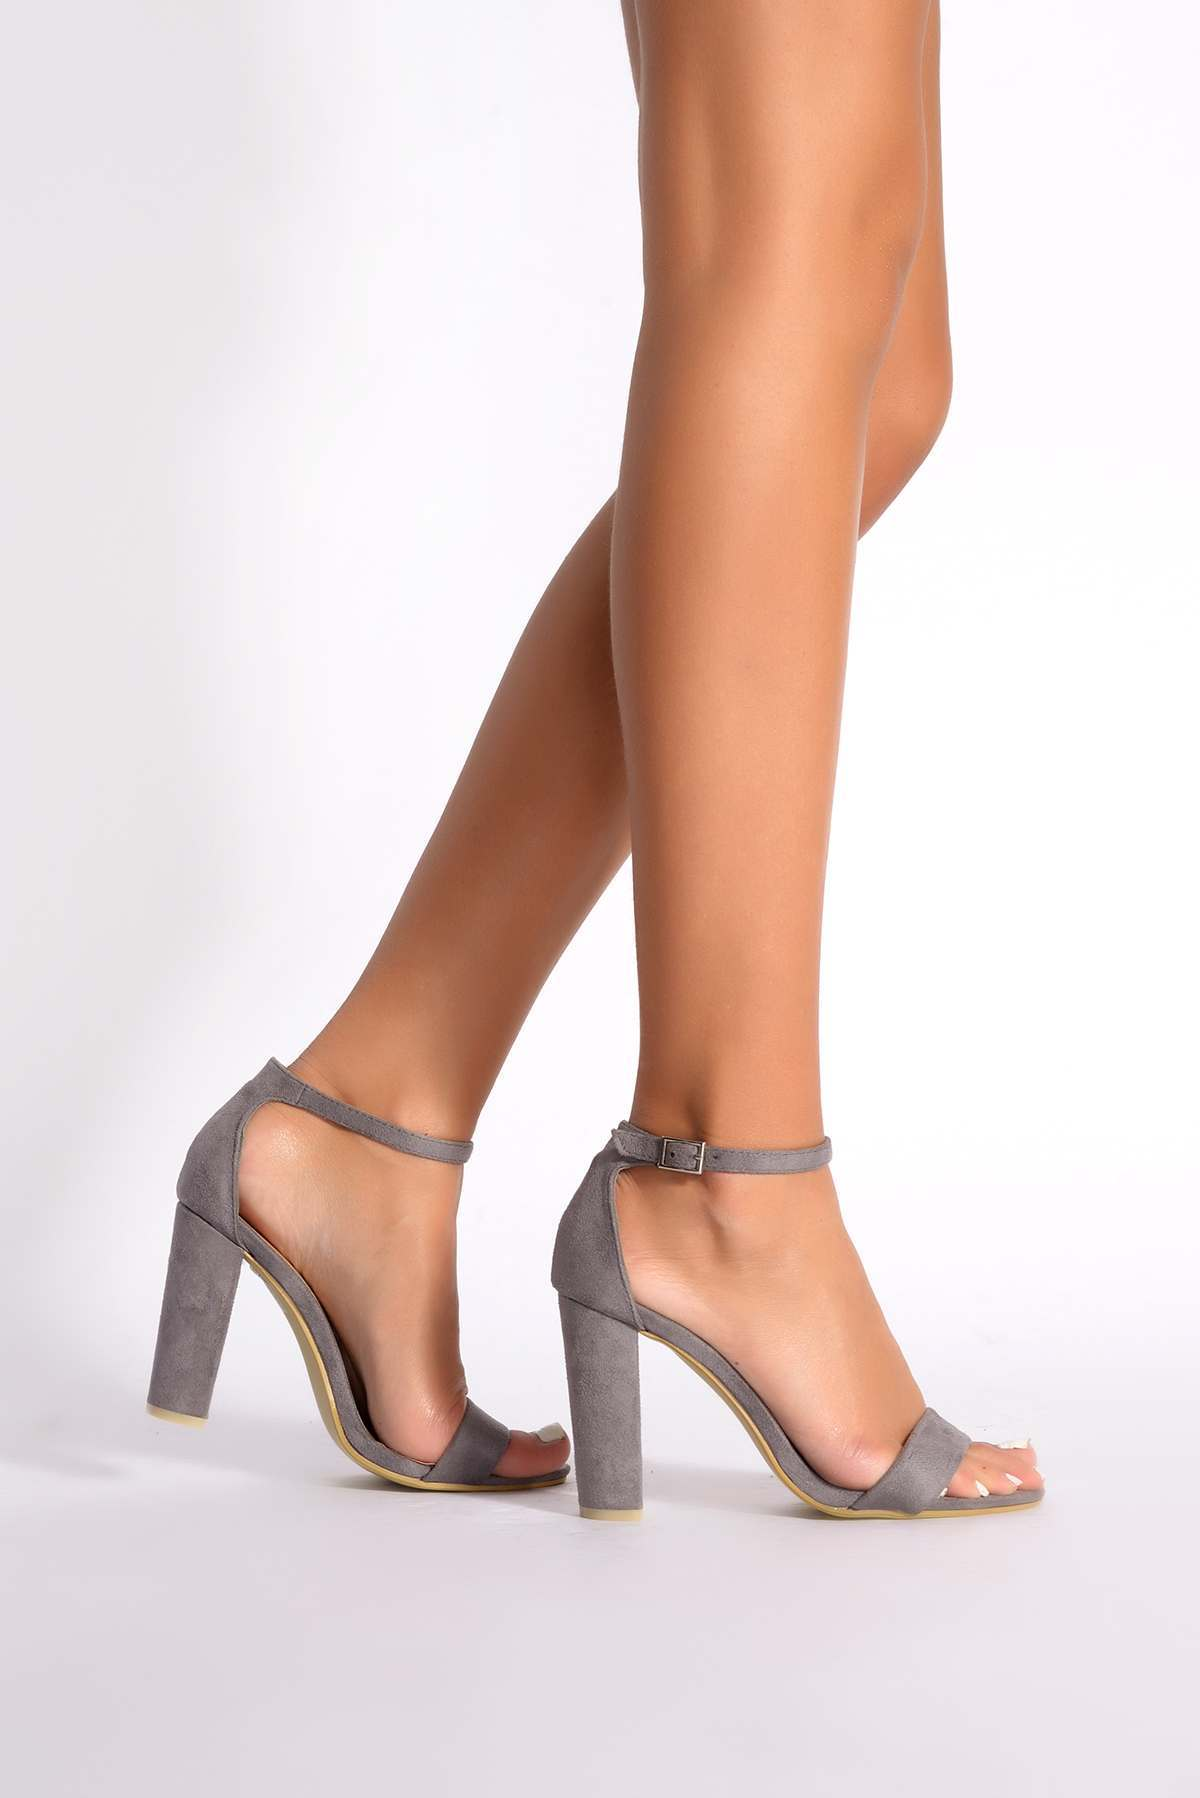 765275f4e00 Morgan Grey Faux Suede Ankle Strap Barely There Heels